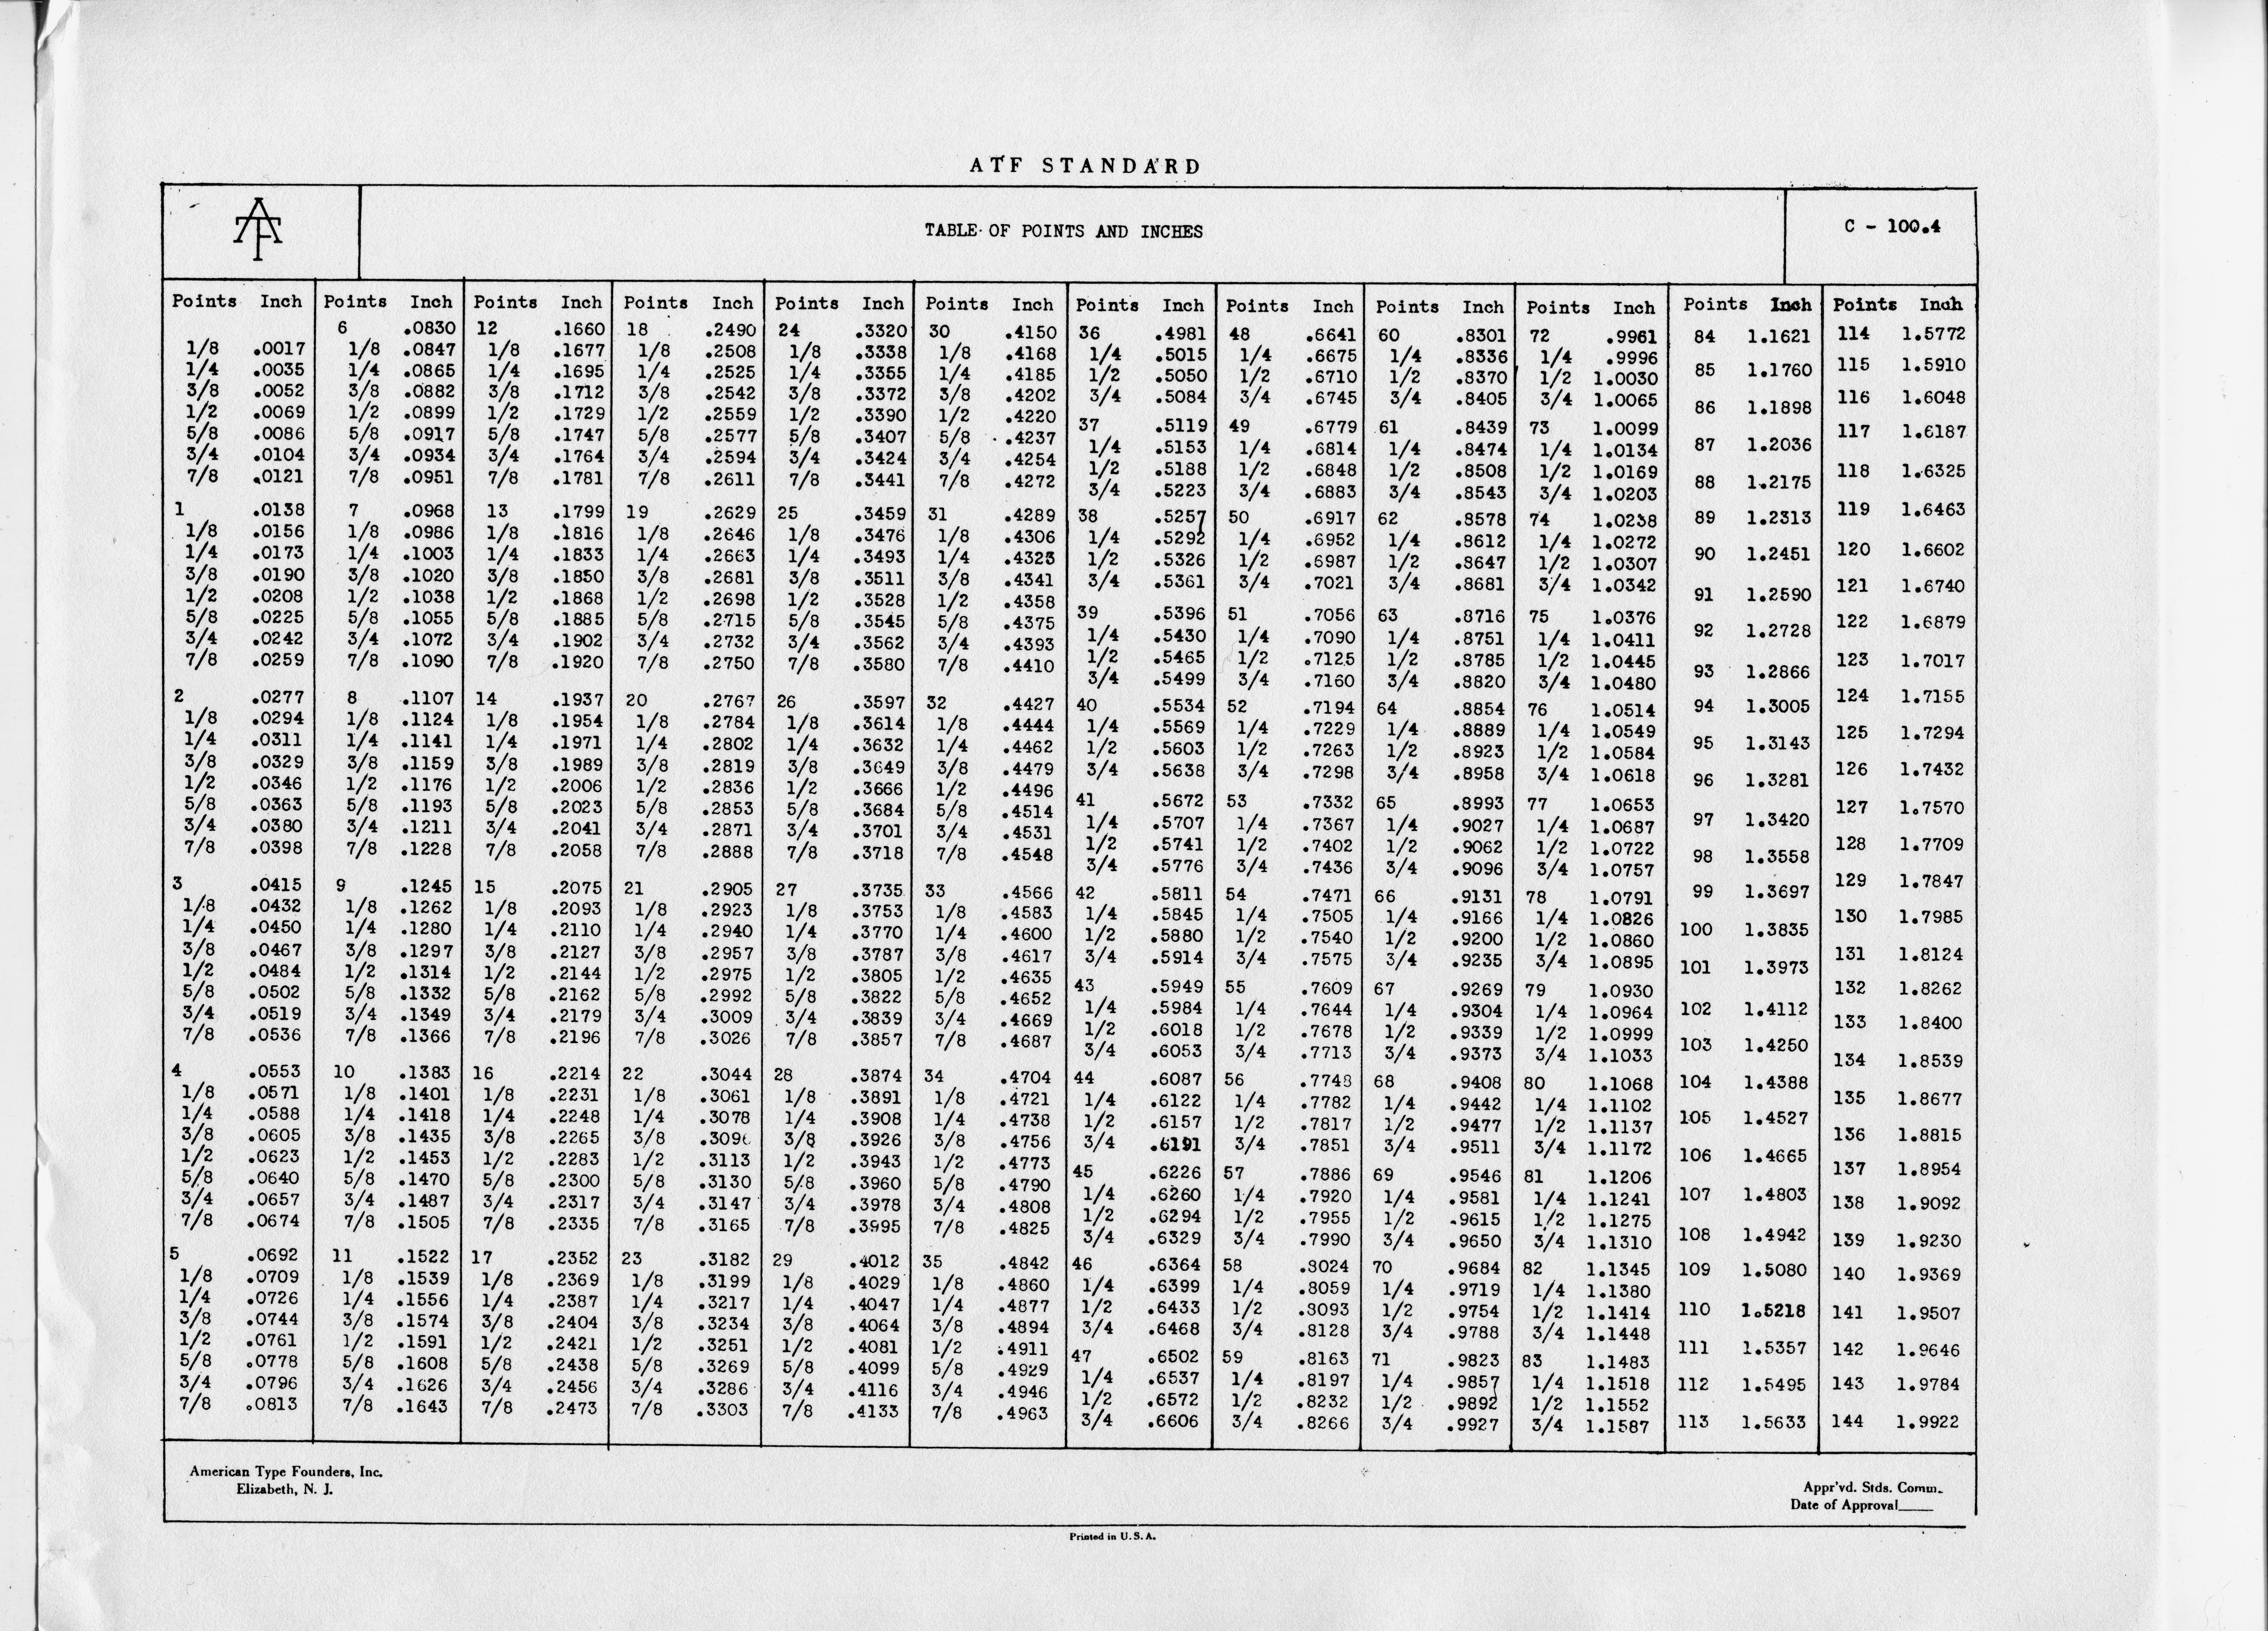 Point and pica conversion tables atf standard table of points and inches photocopy via saxe 0600greyg nvjuhfo Choice Image